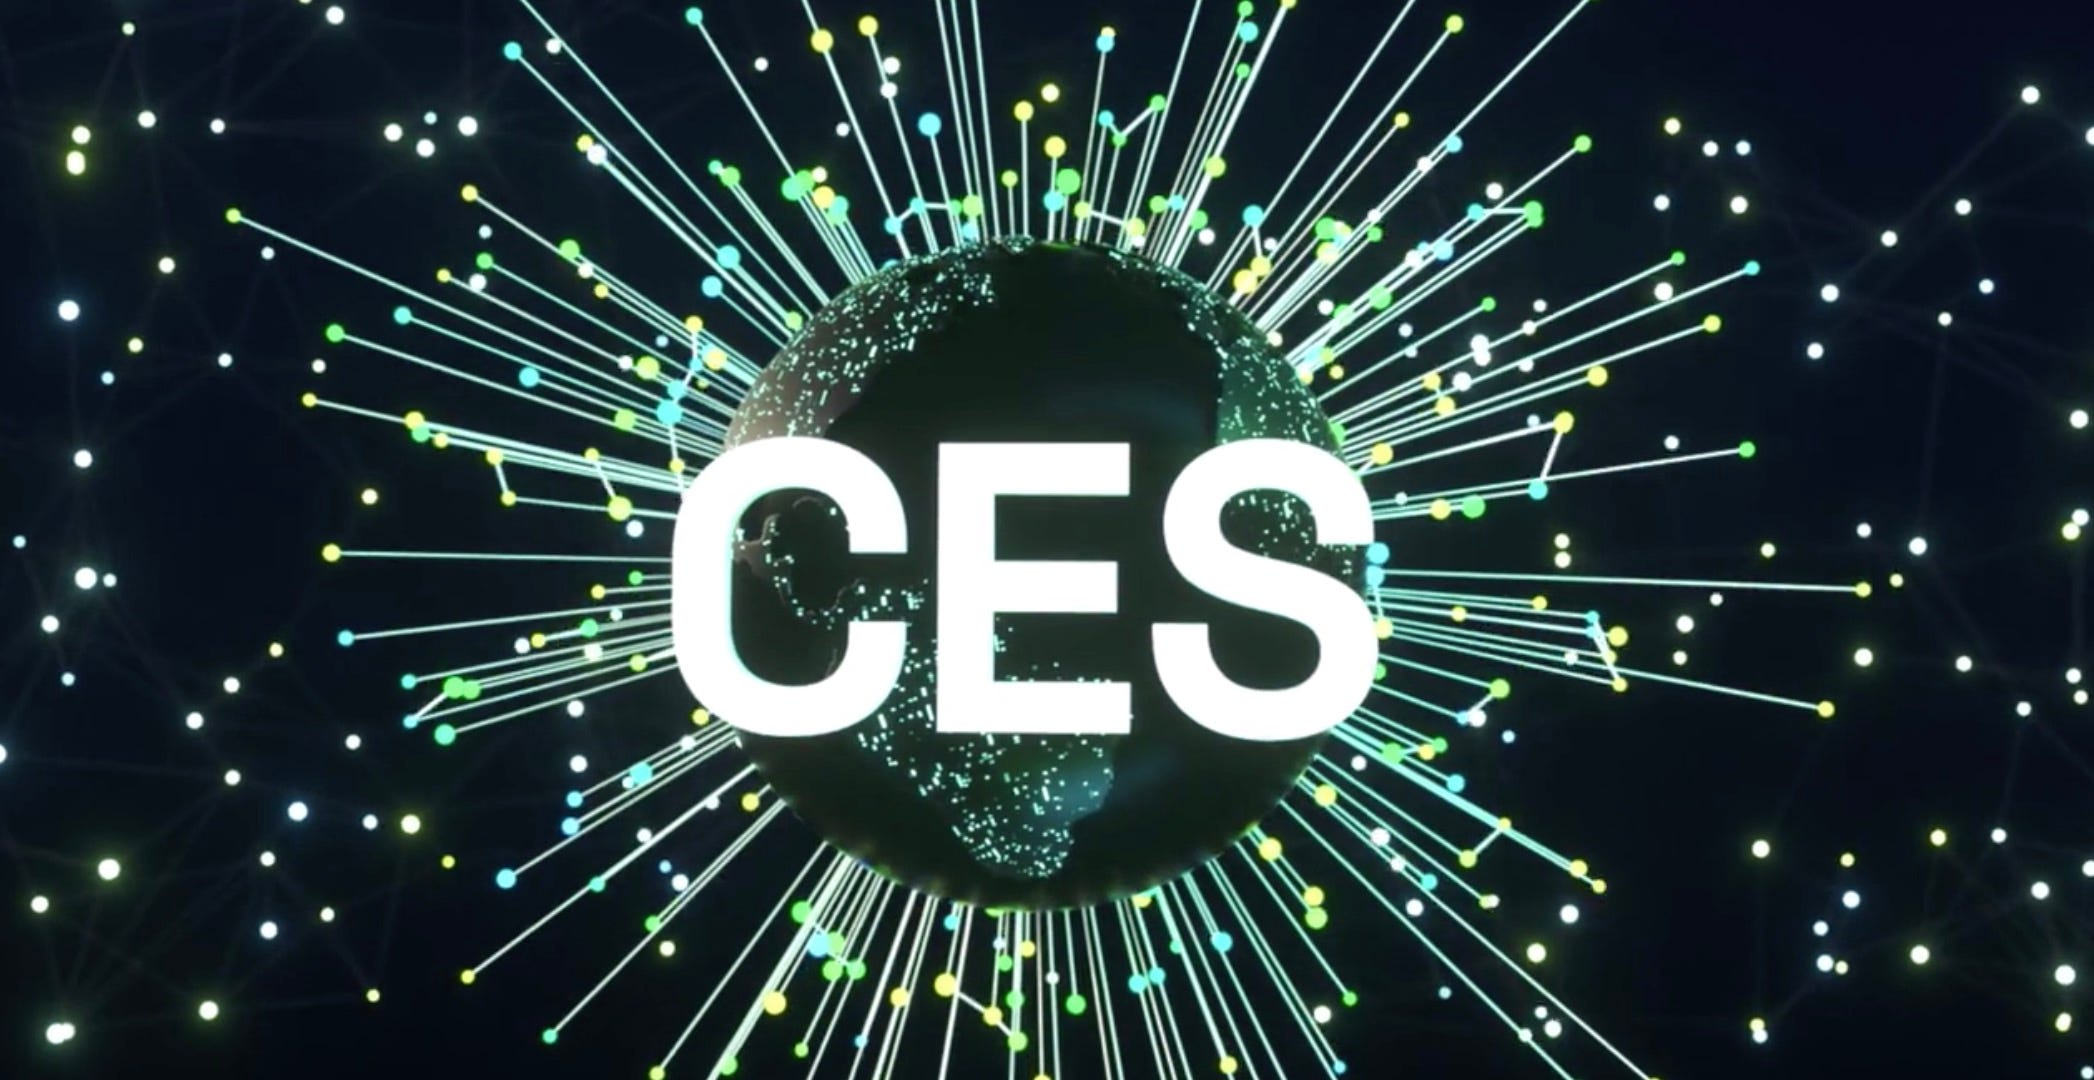 January tech highlights: CES goes digital, Samsung to unveil new products